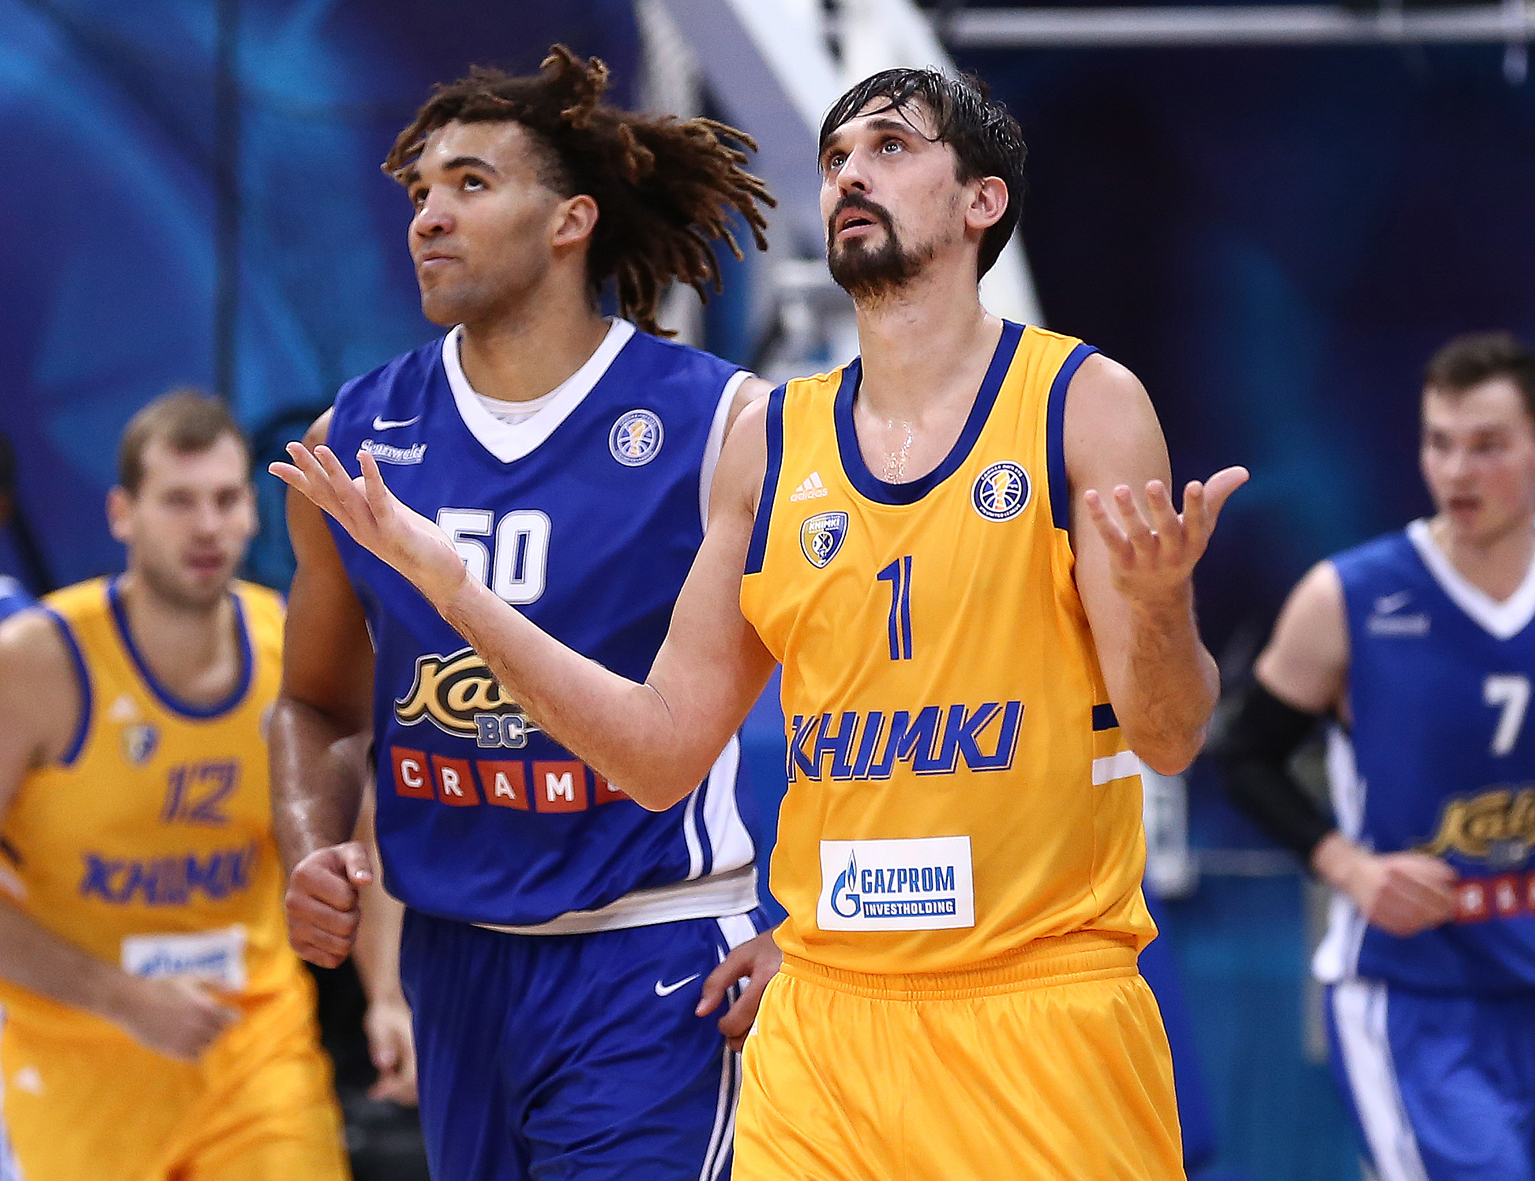 Week In Review: Shved Makes History, Sparks Fly In Kazan